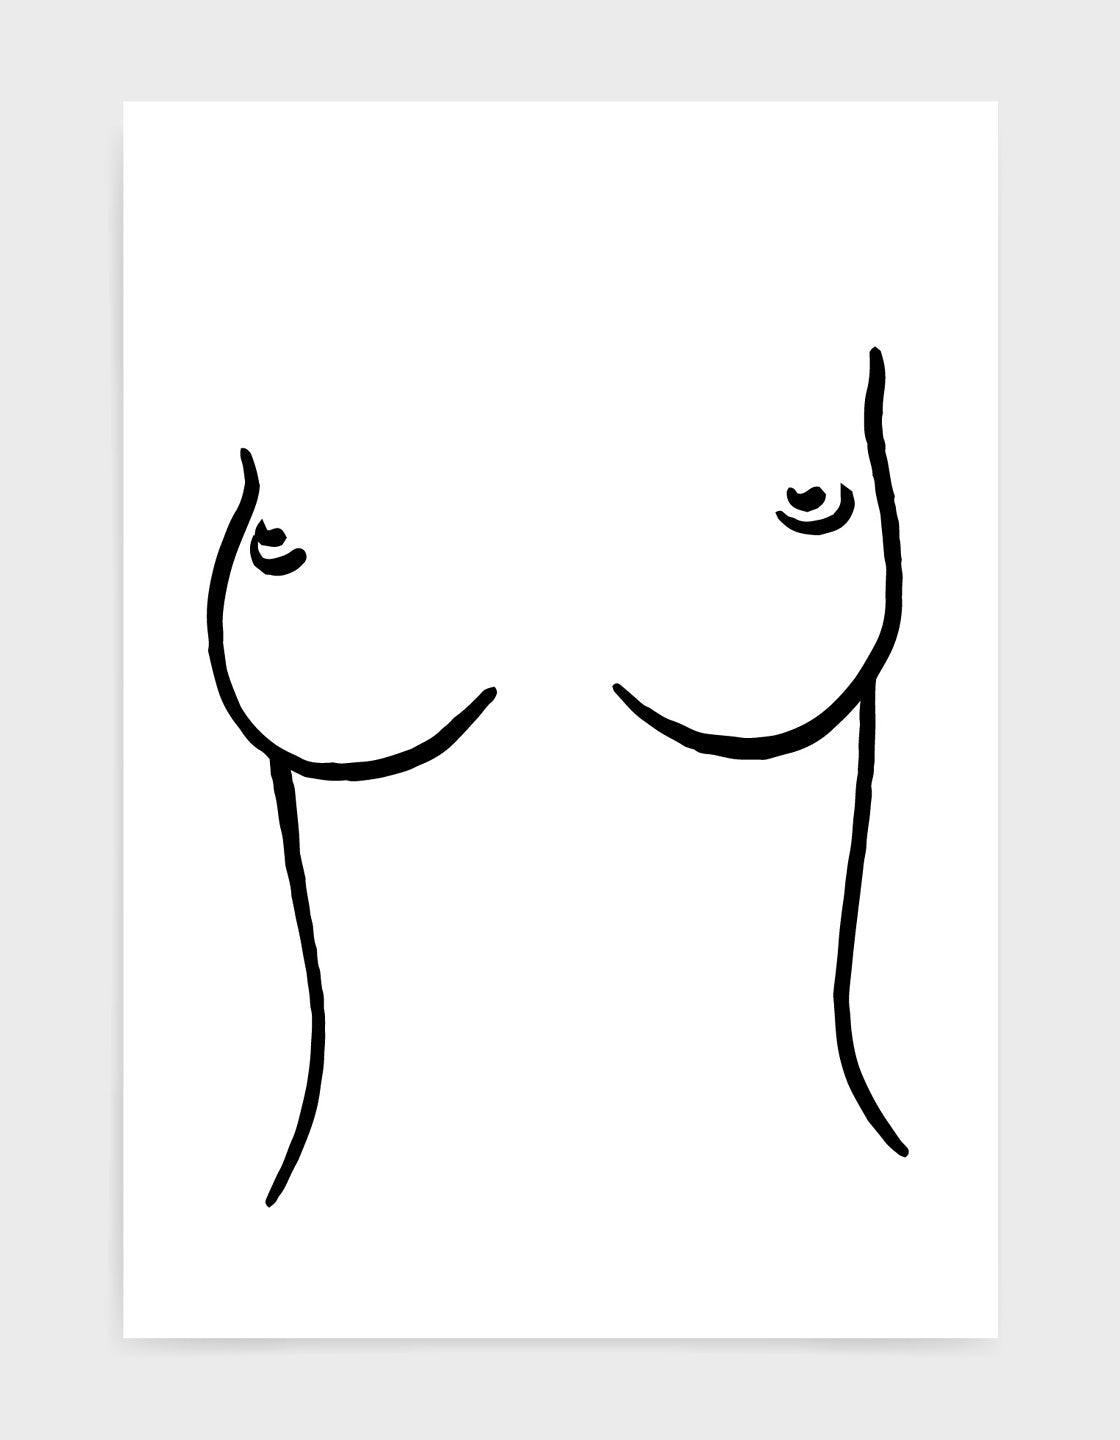 line drawing of a woman's torso and breasts